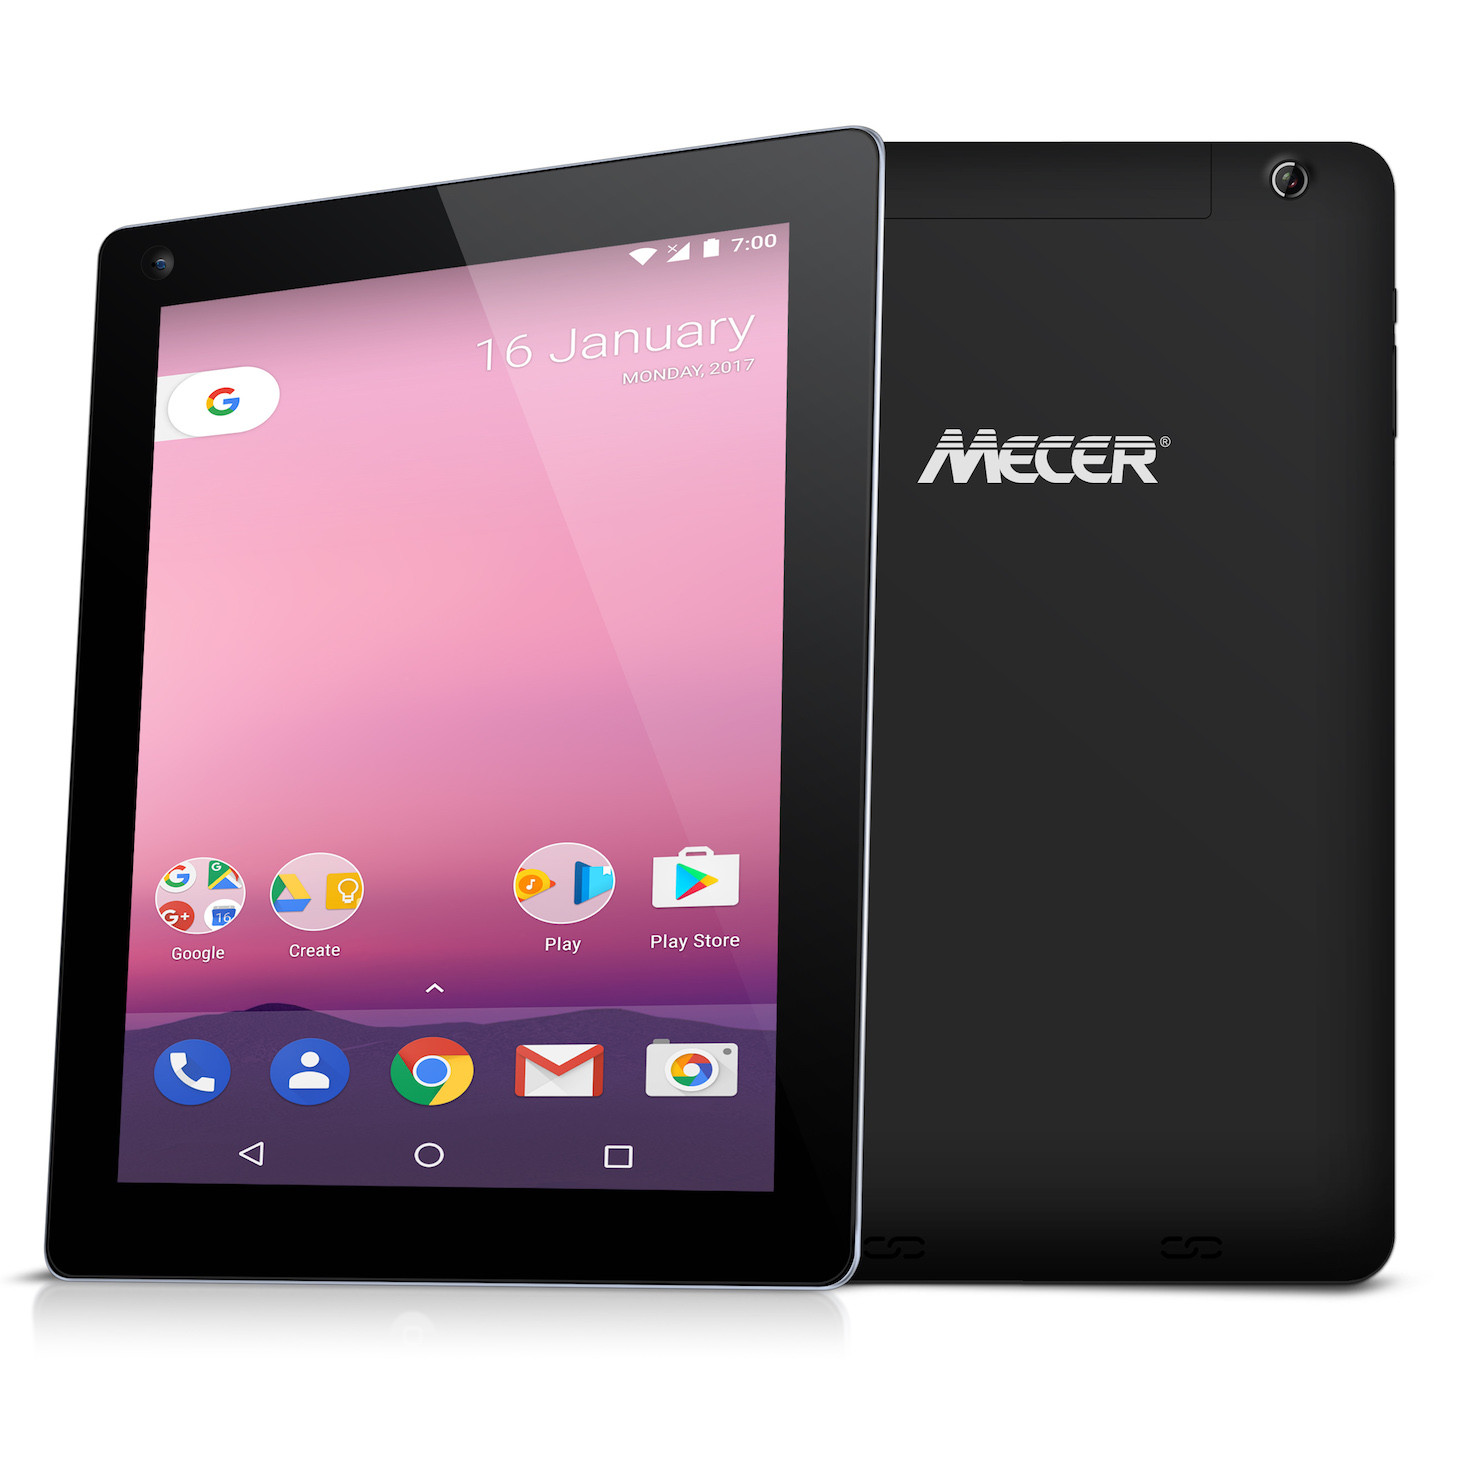 "Mecer Xpress Smartlife 10.1"" 16Q9-3G Android Tablet (Android 7.0) 16 x 10 Format - Black"